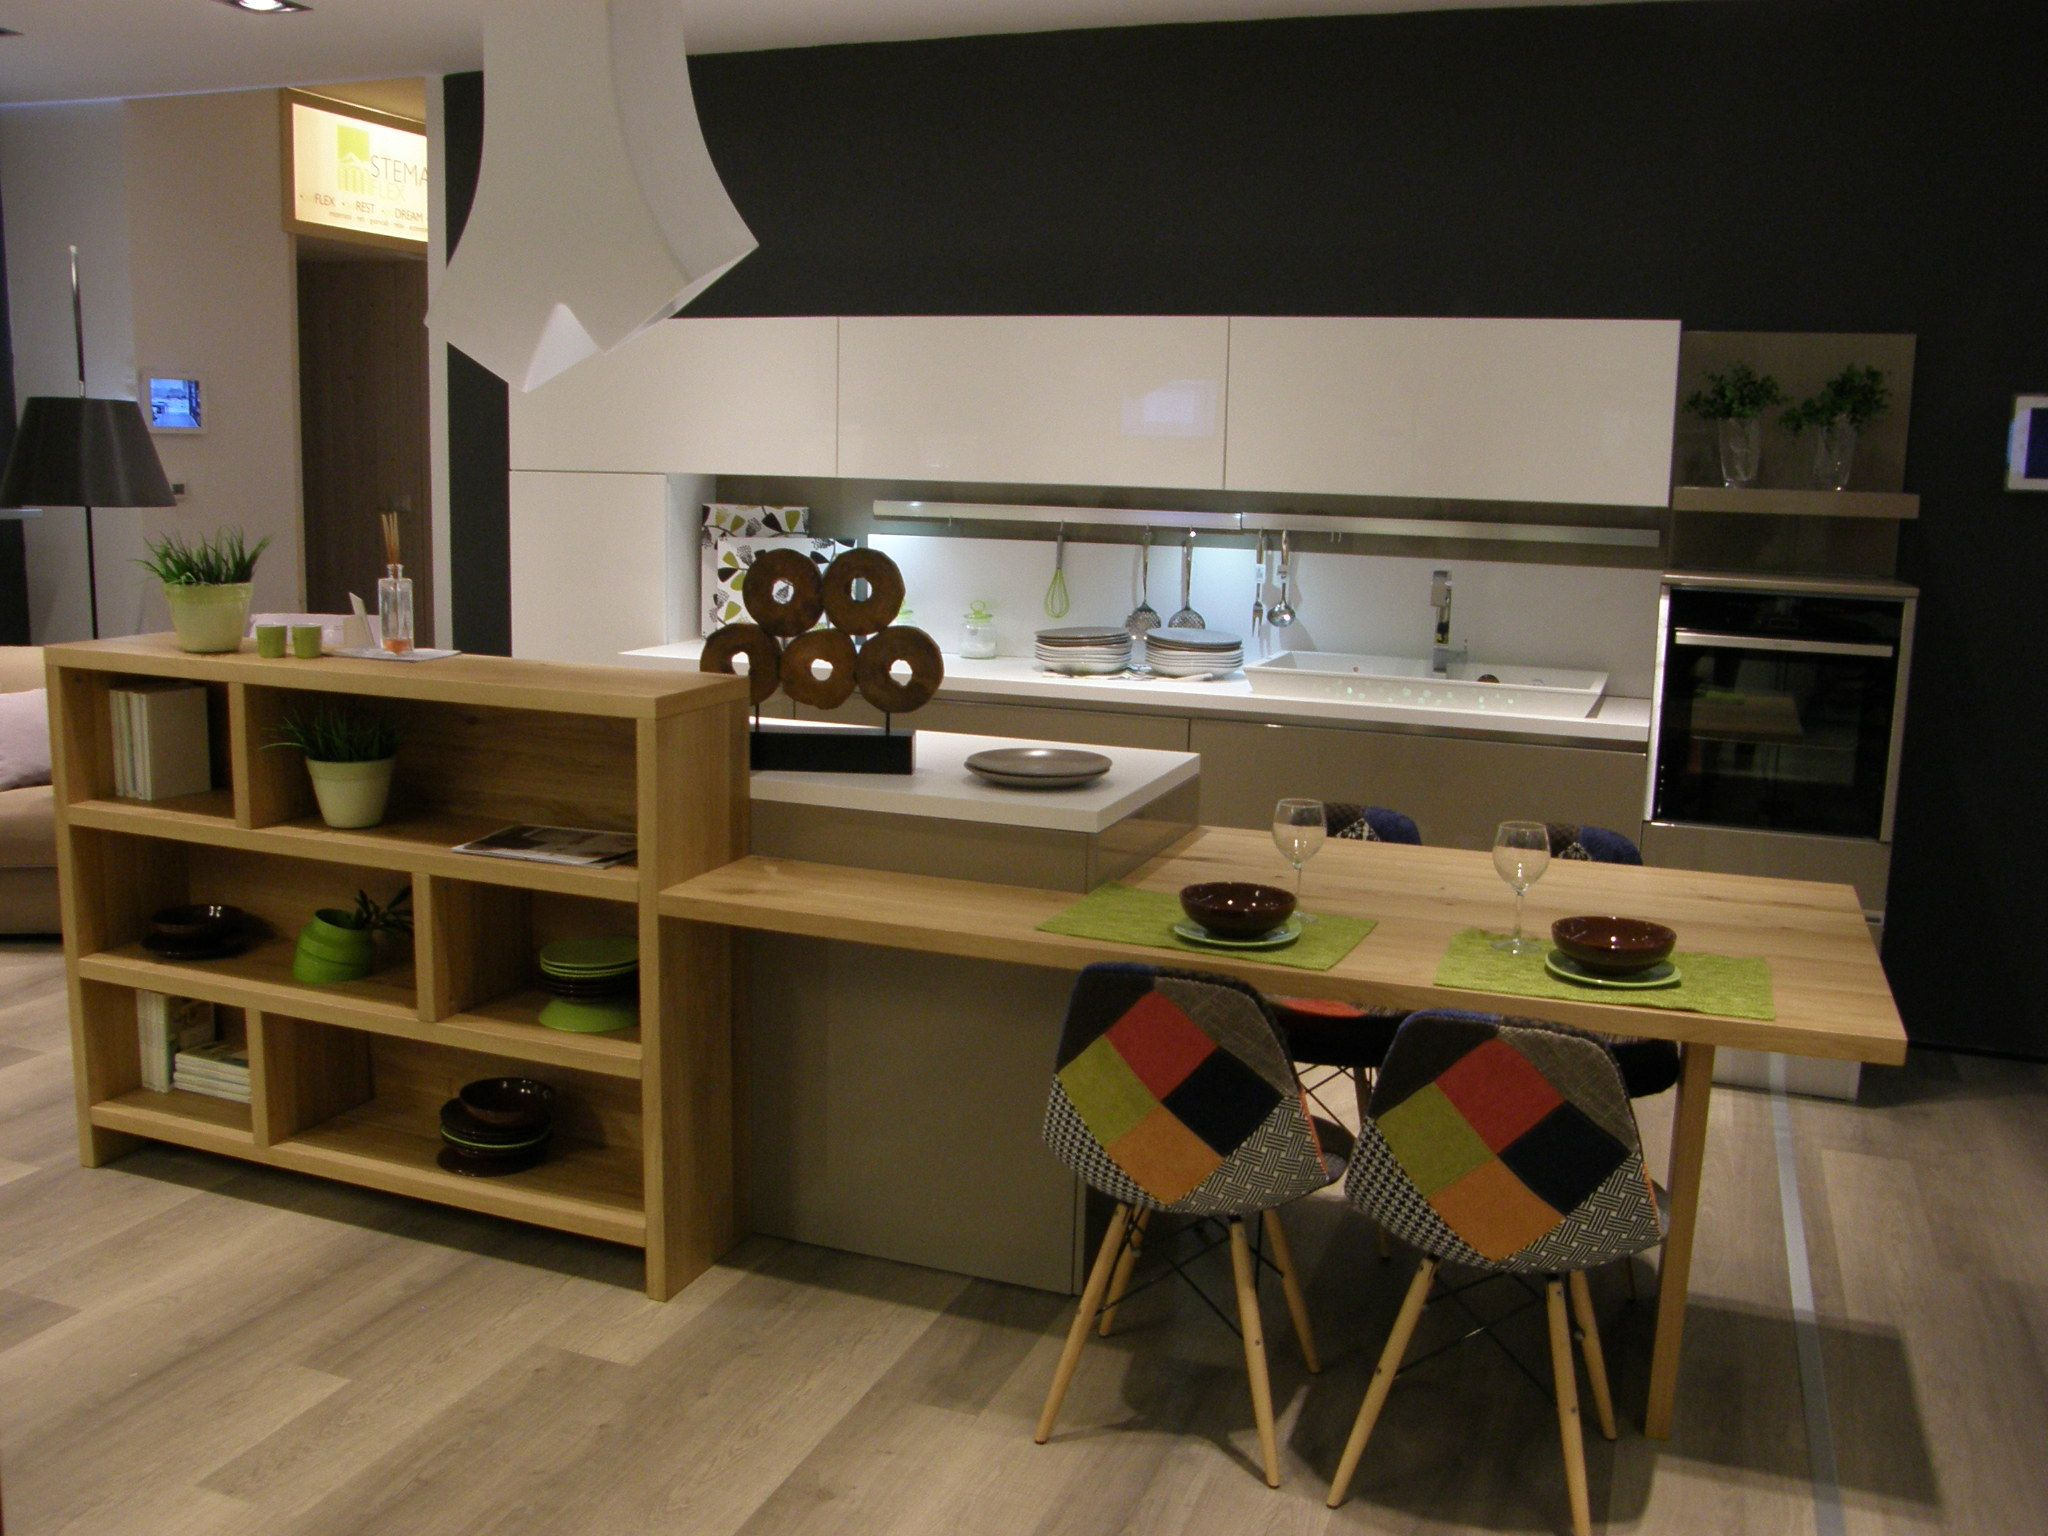 Cucina LUBE Modello Brava | OUTLET Lube | Pinterest | Cucina and Outlets